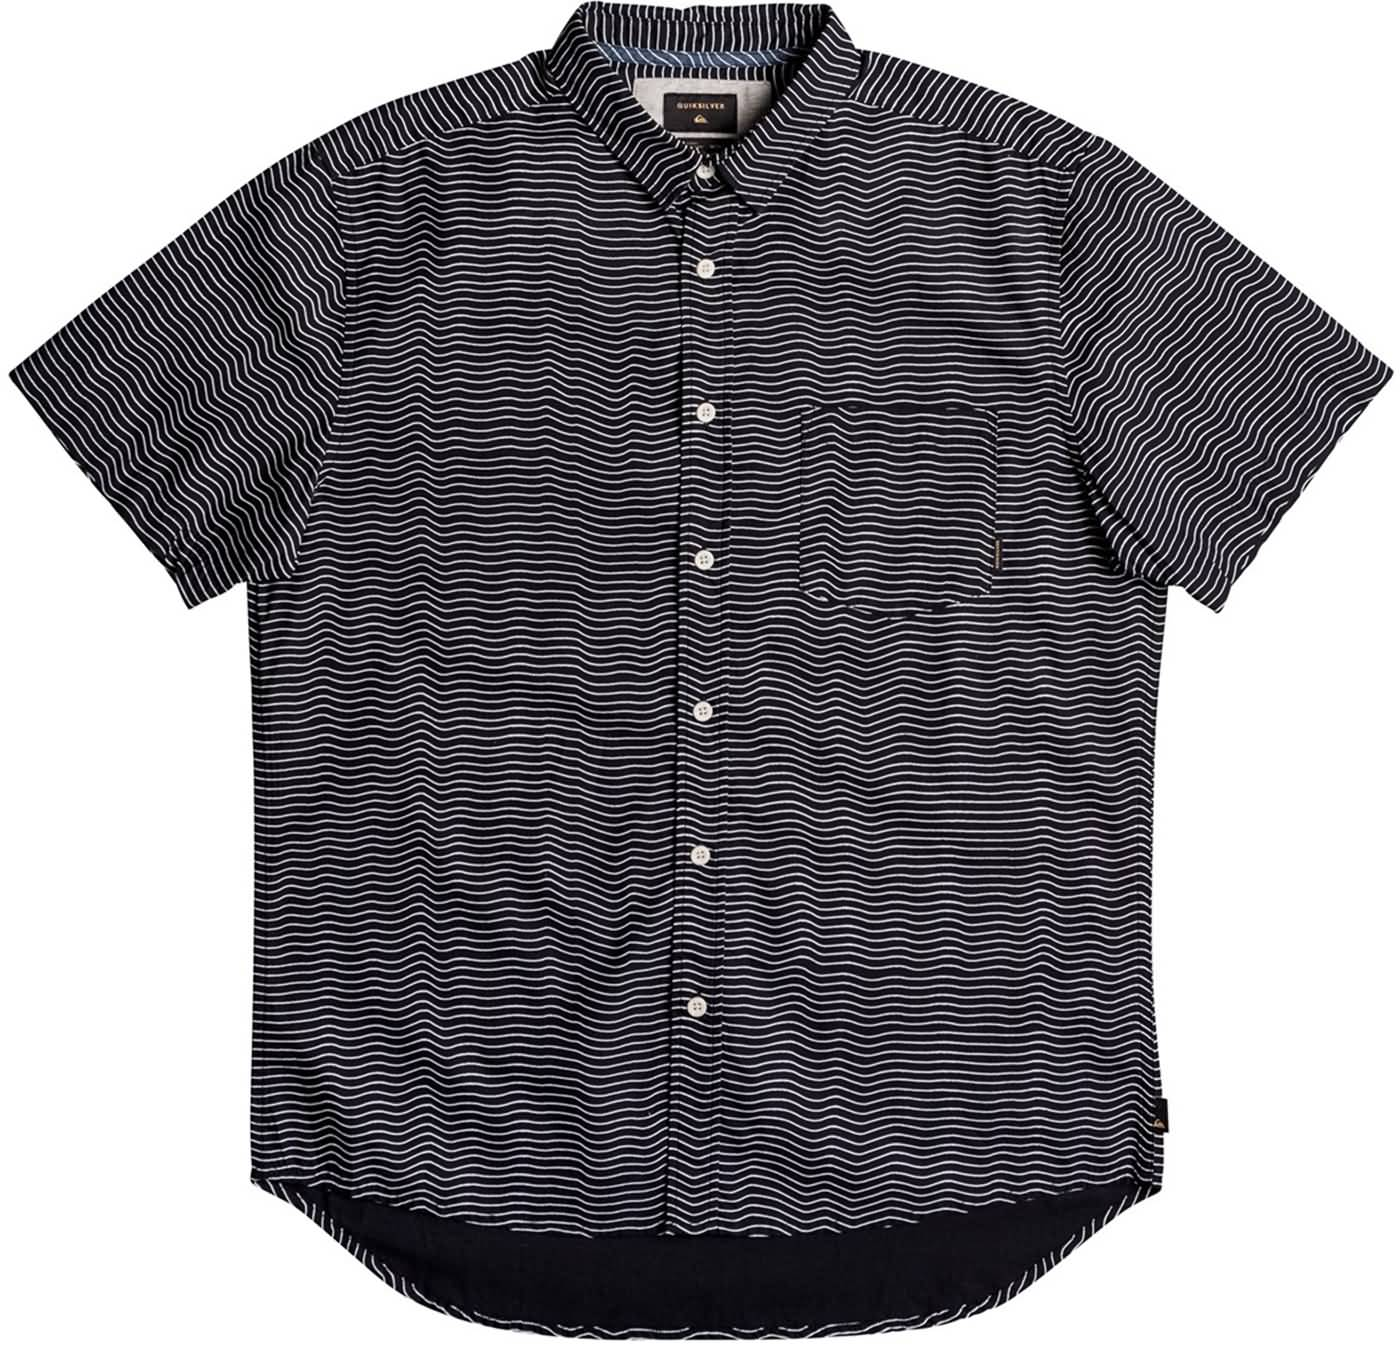 Quiksilver Surf Fall 2017 Mens Button Up Short Sleeve Shirts Preview